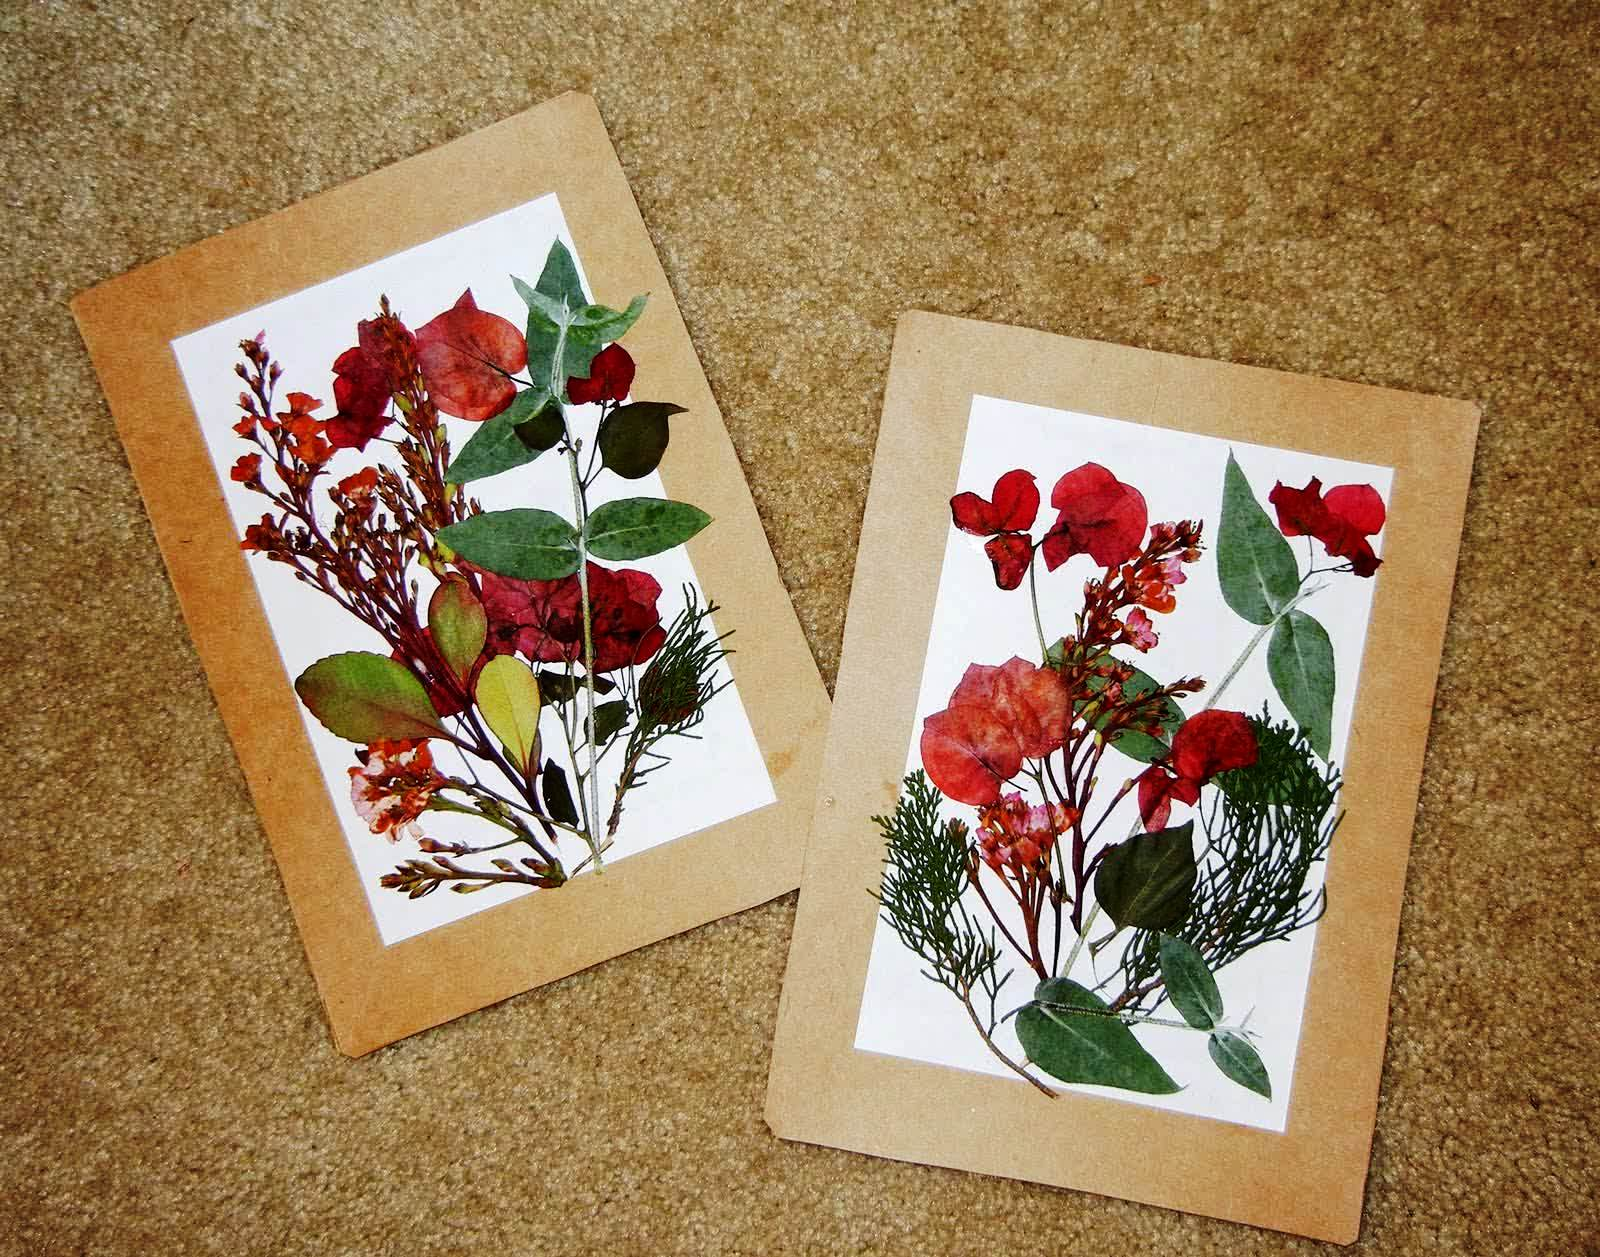 Pressed flowers craft project art craft gift ideas for Dried flowers for crafts